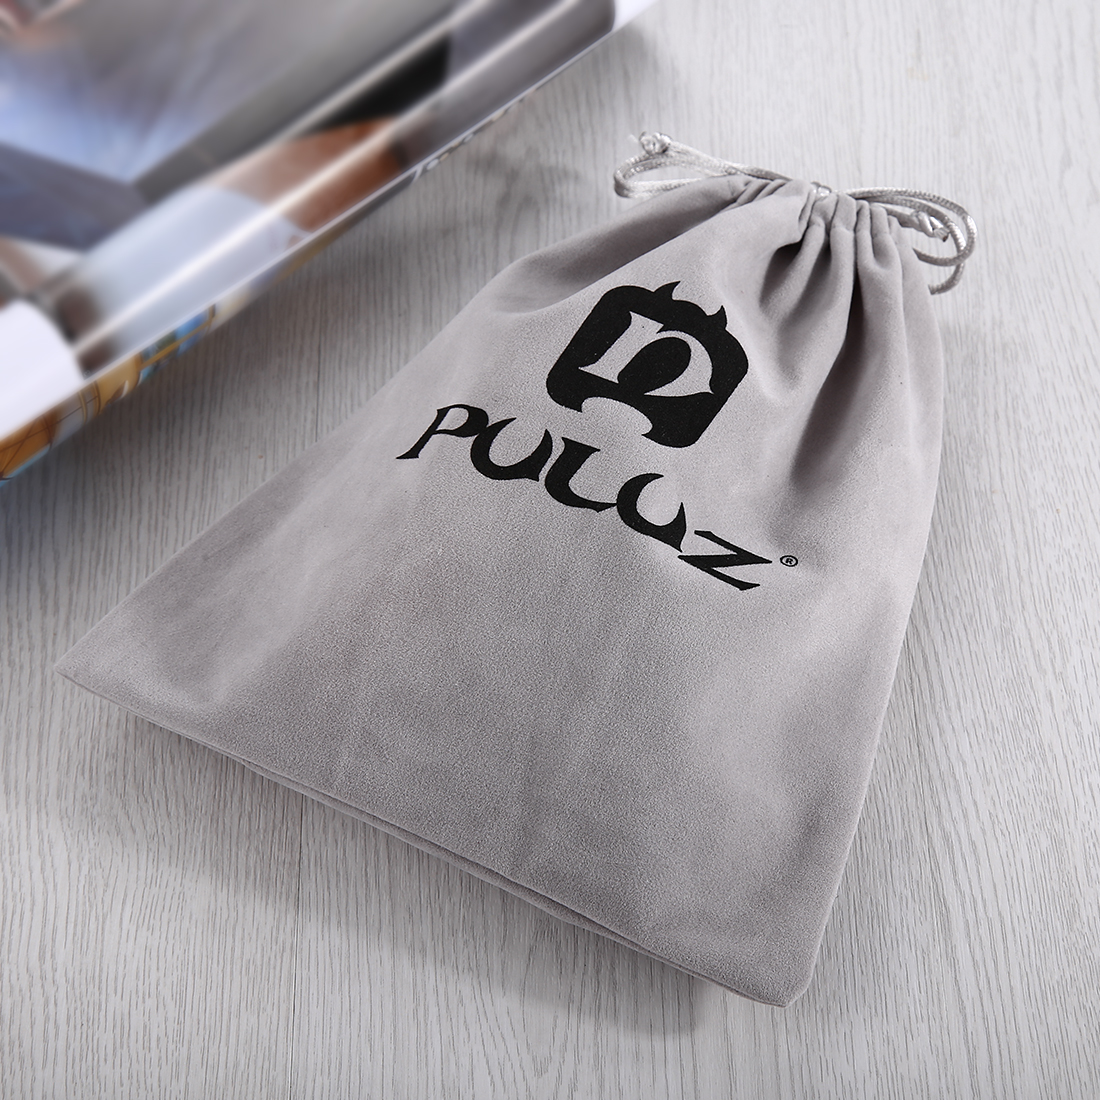 PULUZ Soft Flannel Pouch Bag For GoPro Accessories Nylon Mesh Storage Bag for GoPro SJCAM Xiaomi Yi Camera 24 5cmx 20 5cm D40 in Storage Bags from Home Garden